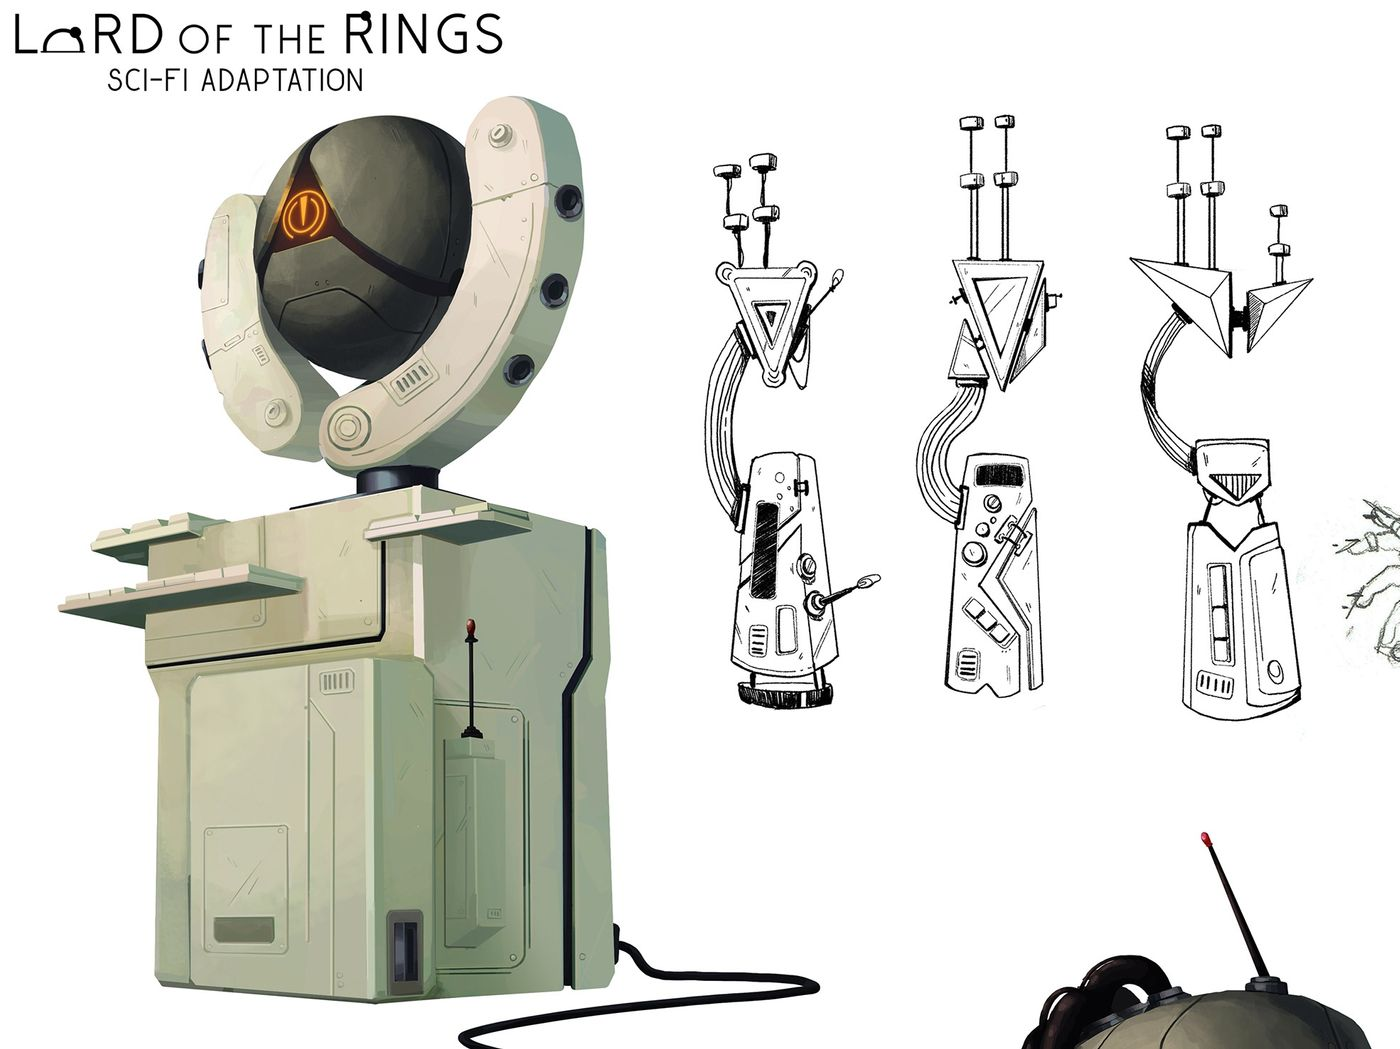 Lord of the Rings - Sci-fi